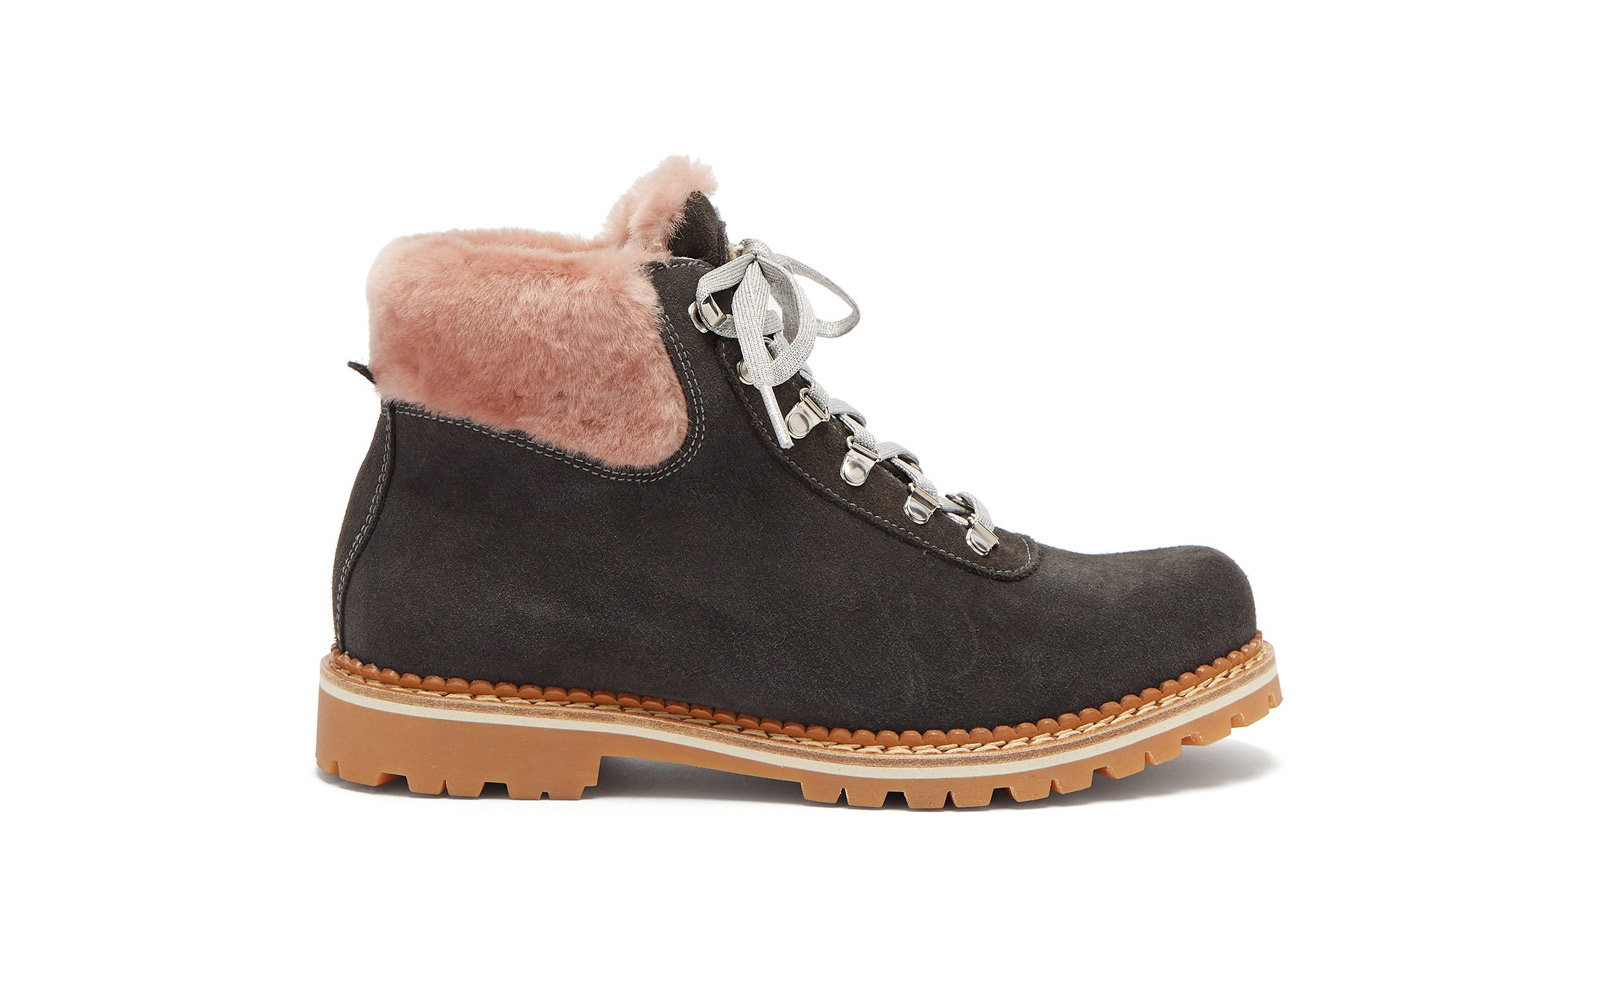 1e4cd2f36648 Best for  Après-ski. Fur Trimmed Winter Boots